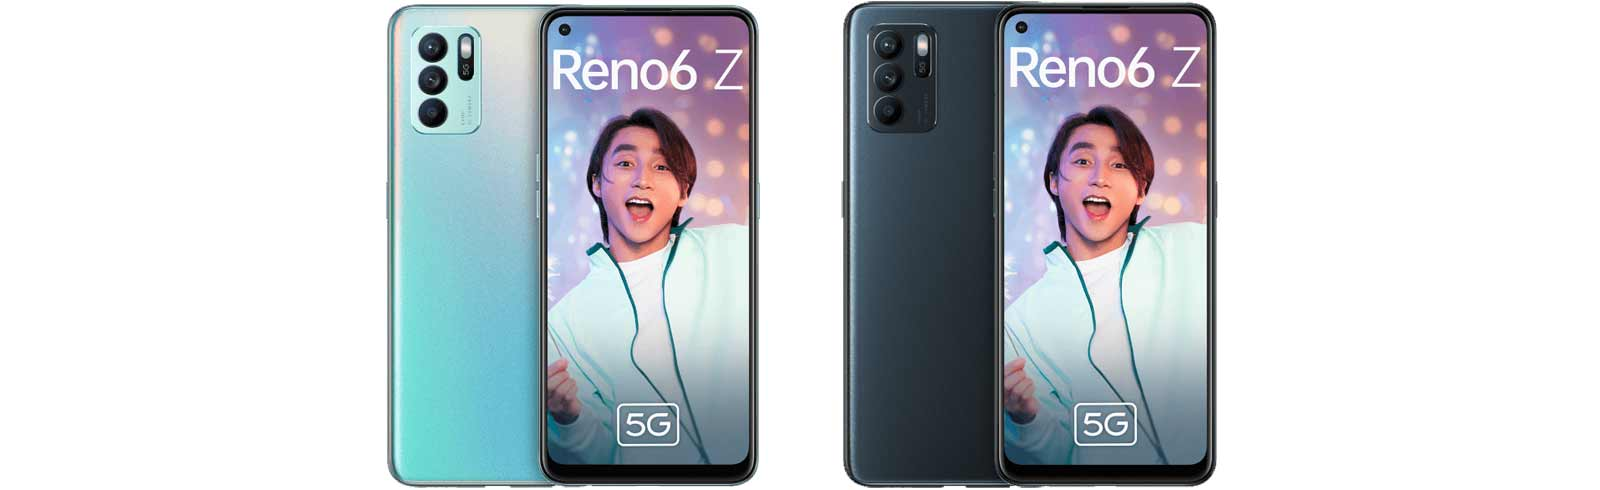 Oppo Reno6 Z 5G is official in Vietnam with a Dimensity 800U chipset